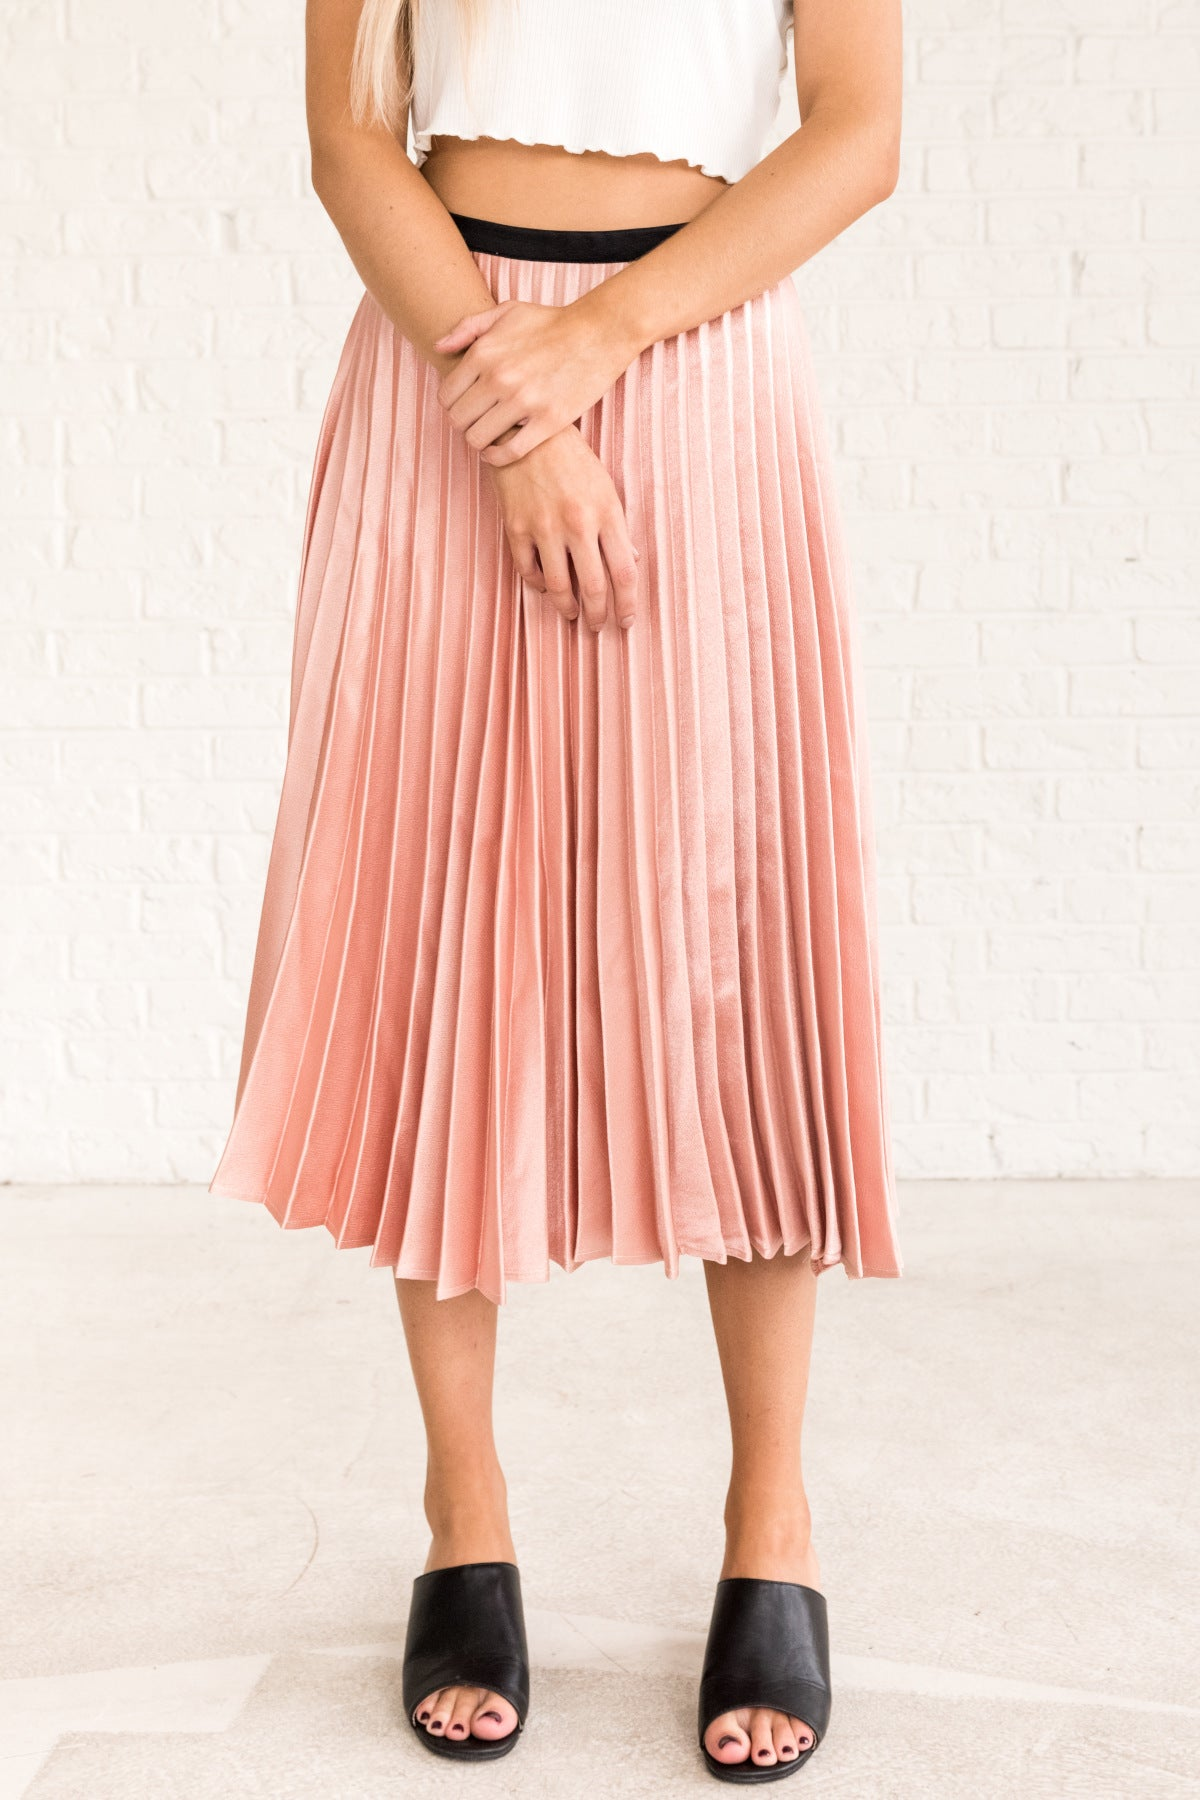 59b457594 Pink Metallic Cute Midi Skirt with Zipper and Black Waistband